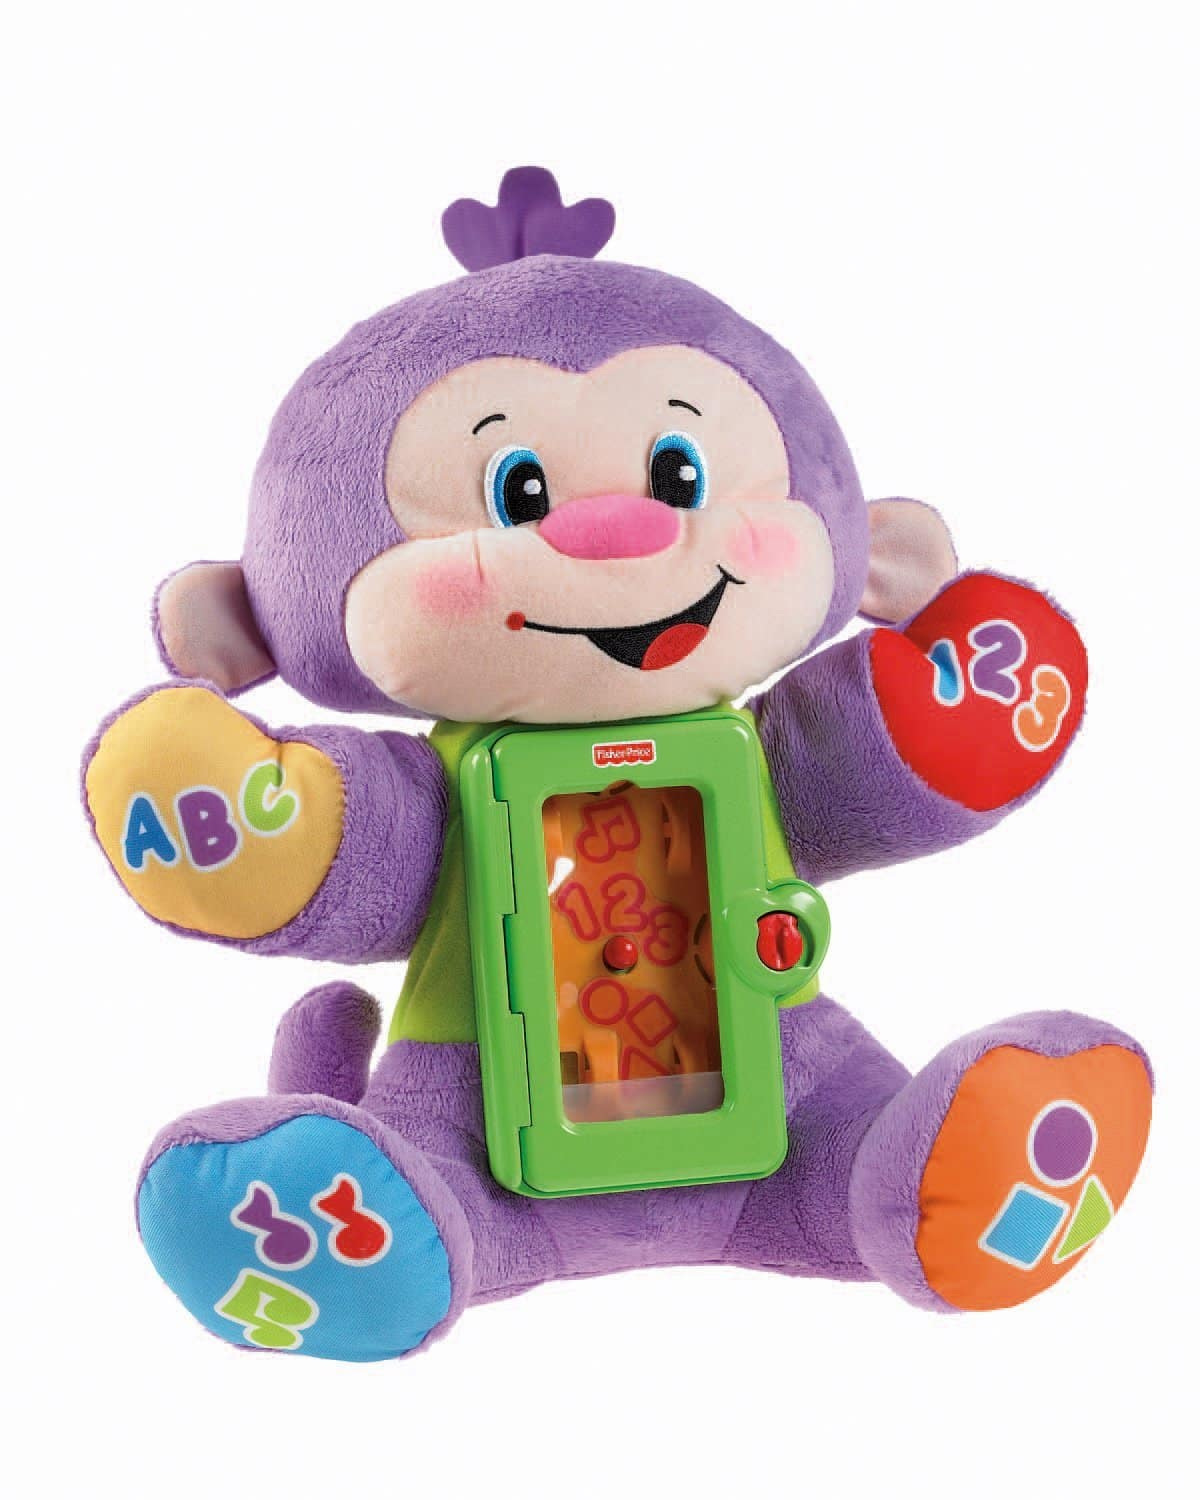 Fisher Price Store Sale: Up to 75% Off 75 Toys: Laugh & Learn Apptivity Monkey  $7.50 & More + Shipping